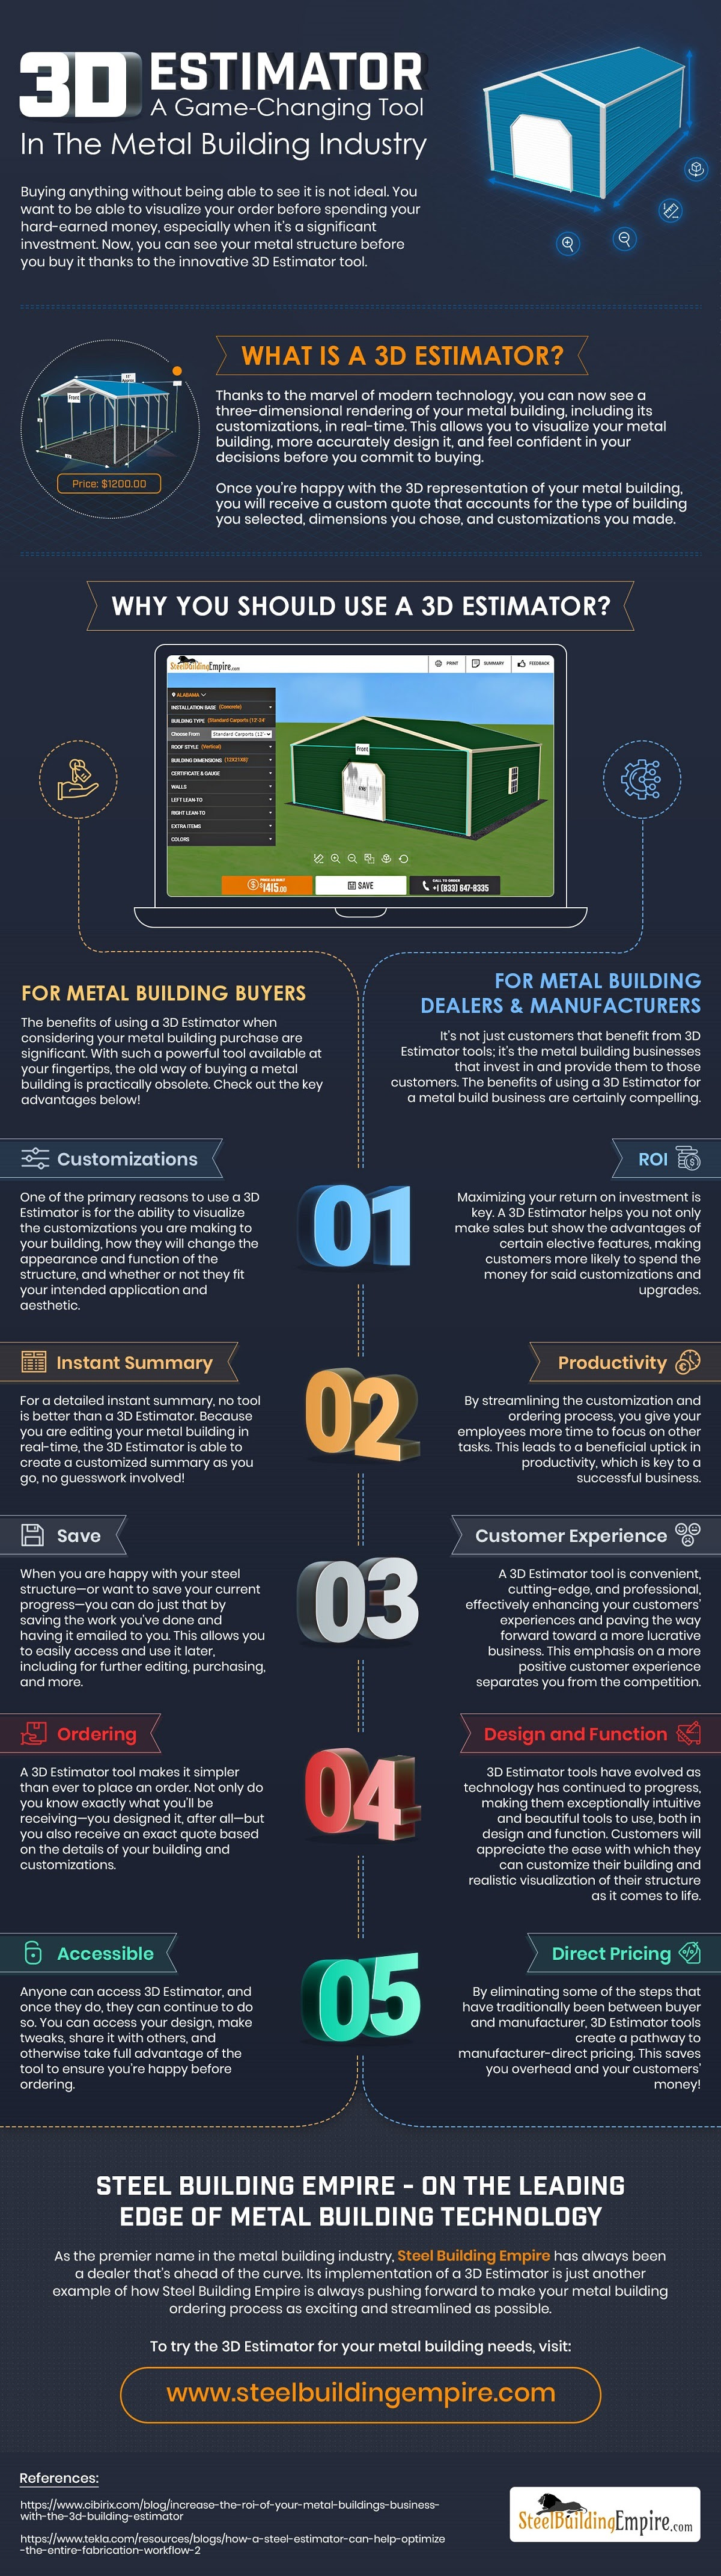 3d-estimator-a-game-changing-tool-in-the-metal-building-industry-infographic